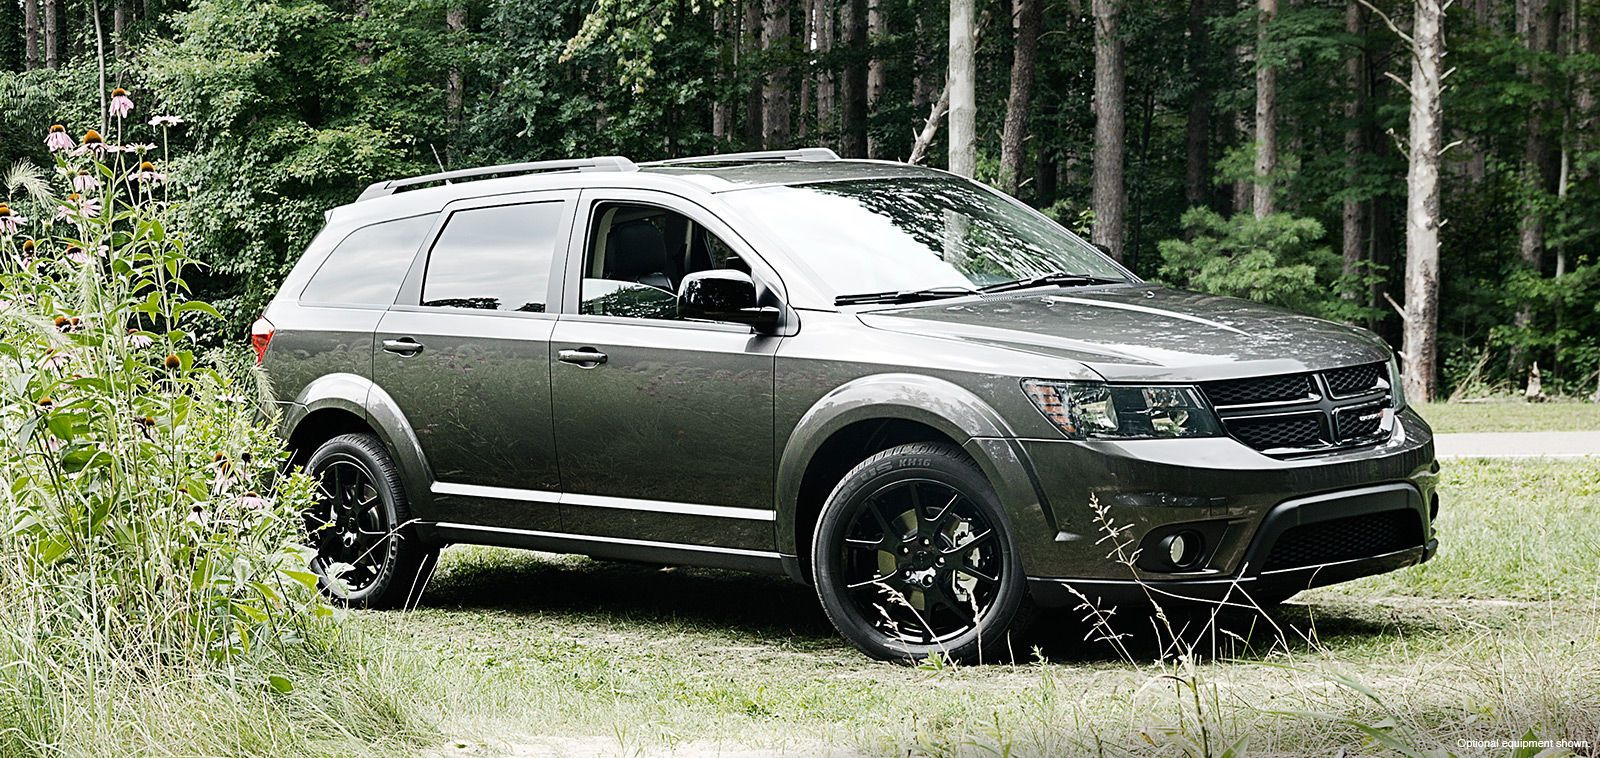 The 25 best 2016 dodge journey ideas on pinterest dodge journey dodge suv 2016 and 2014 dodge journey